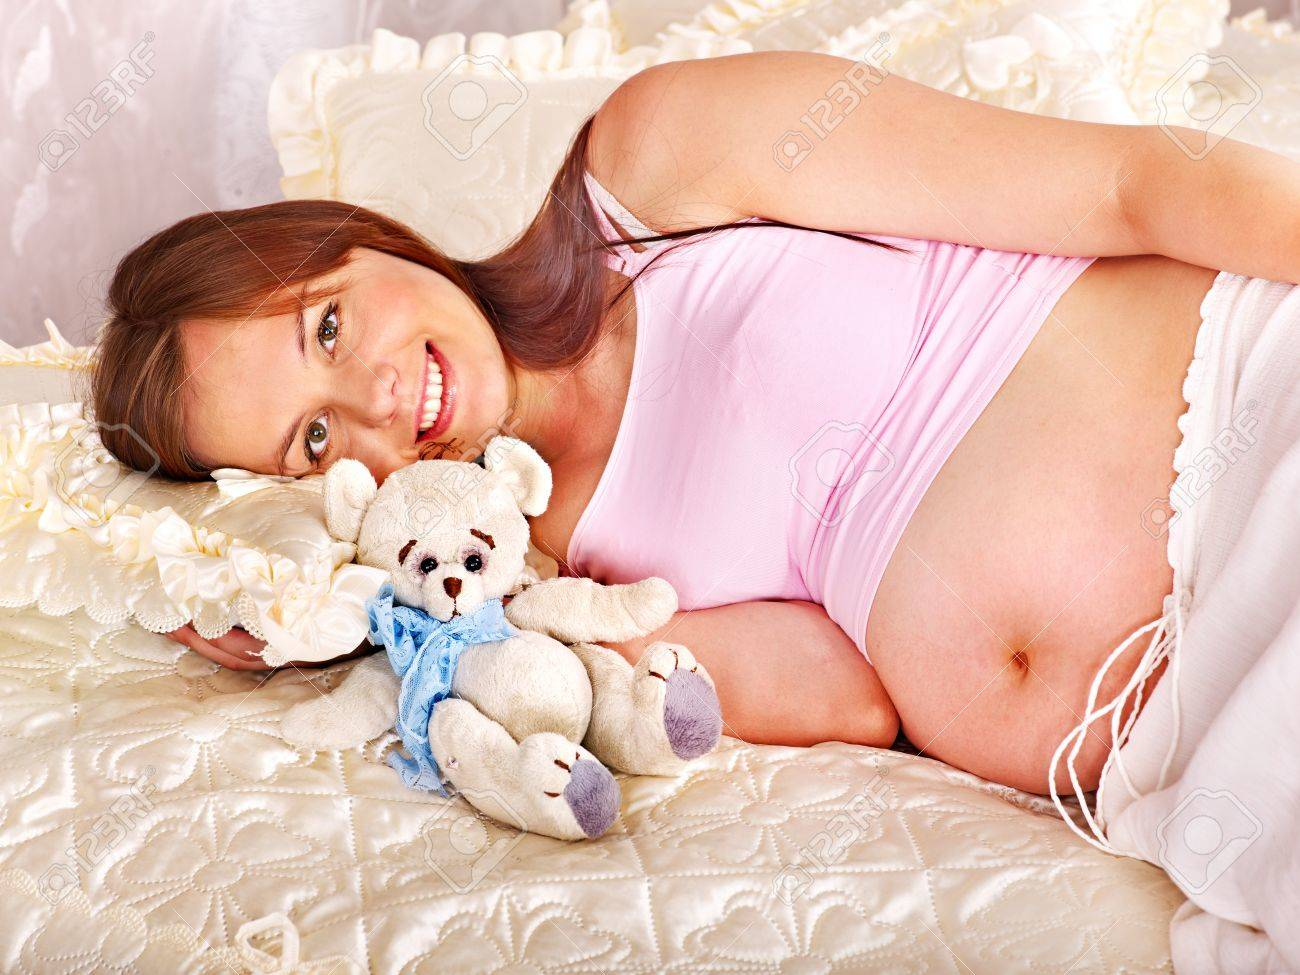 Pregnant woman holding teddy bear at bedroom. Stock Photo - 17405311